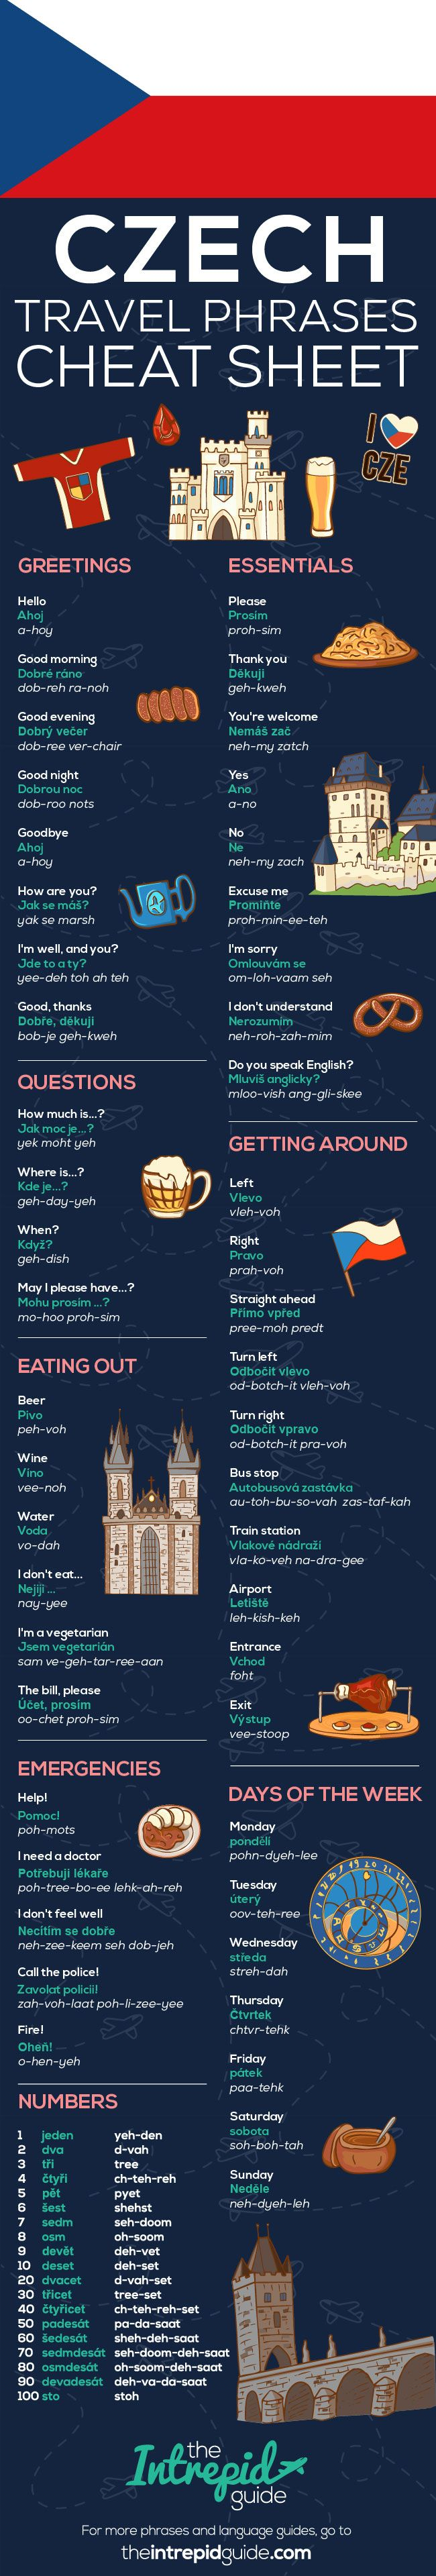 Sitting on top of the tourist bucket list is the Czech Republic, giving travellers a taste of Central Europe. Get to know the locals with these Czech phrases.